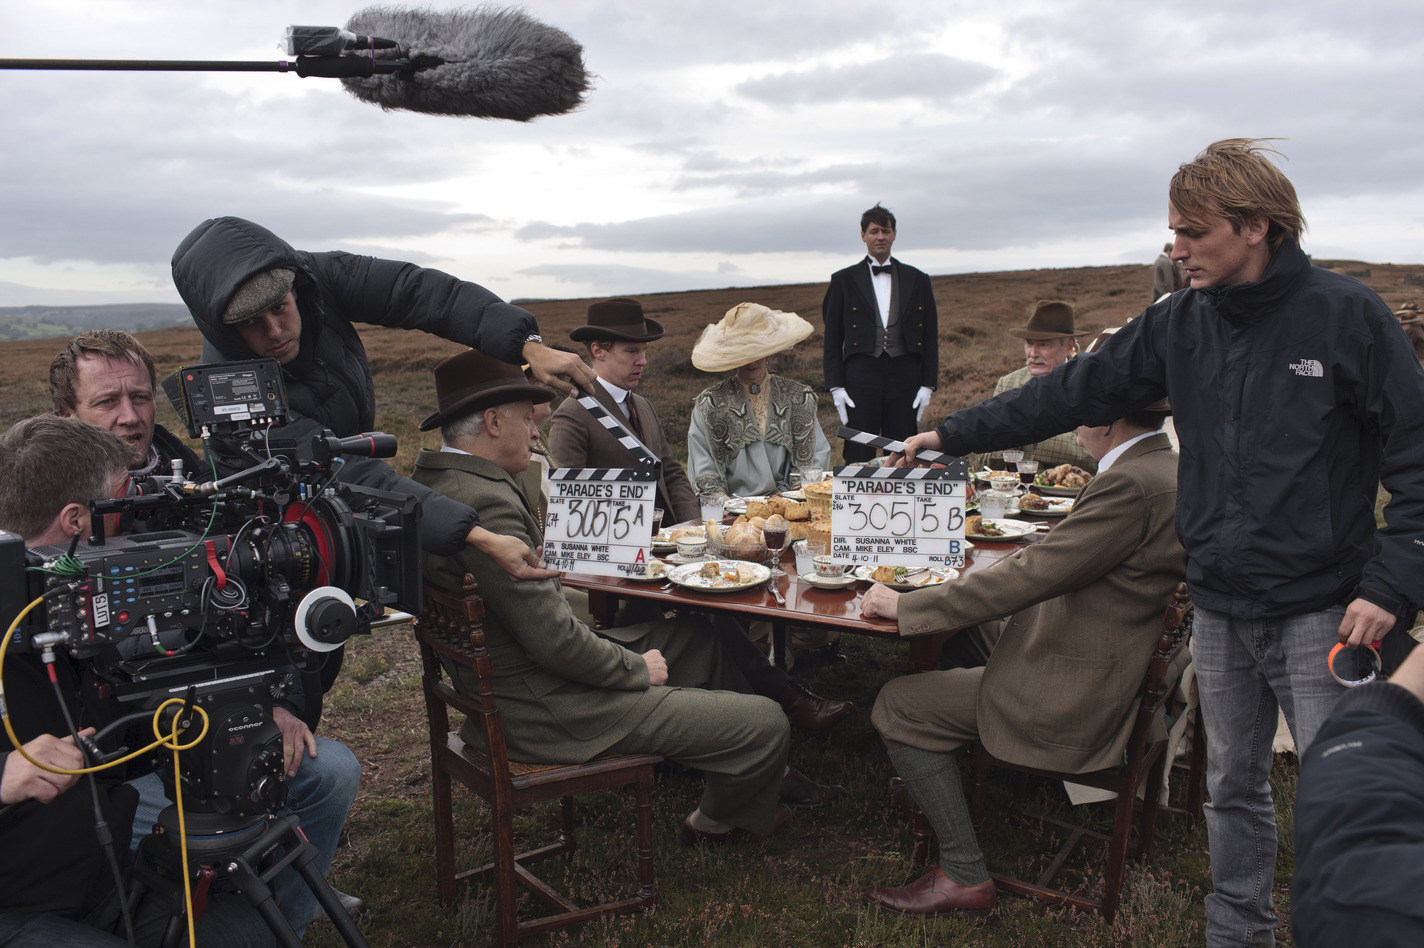 On Location : Parade's End (2012) Behind the Scenes